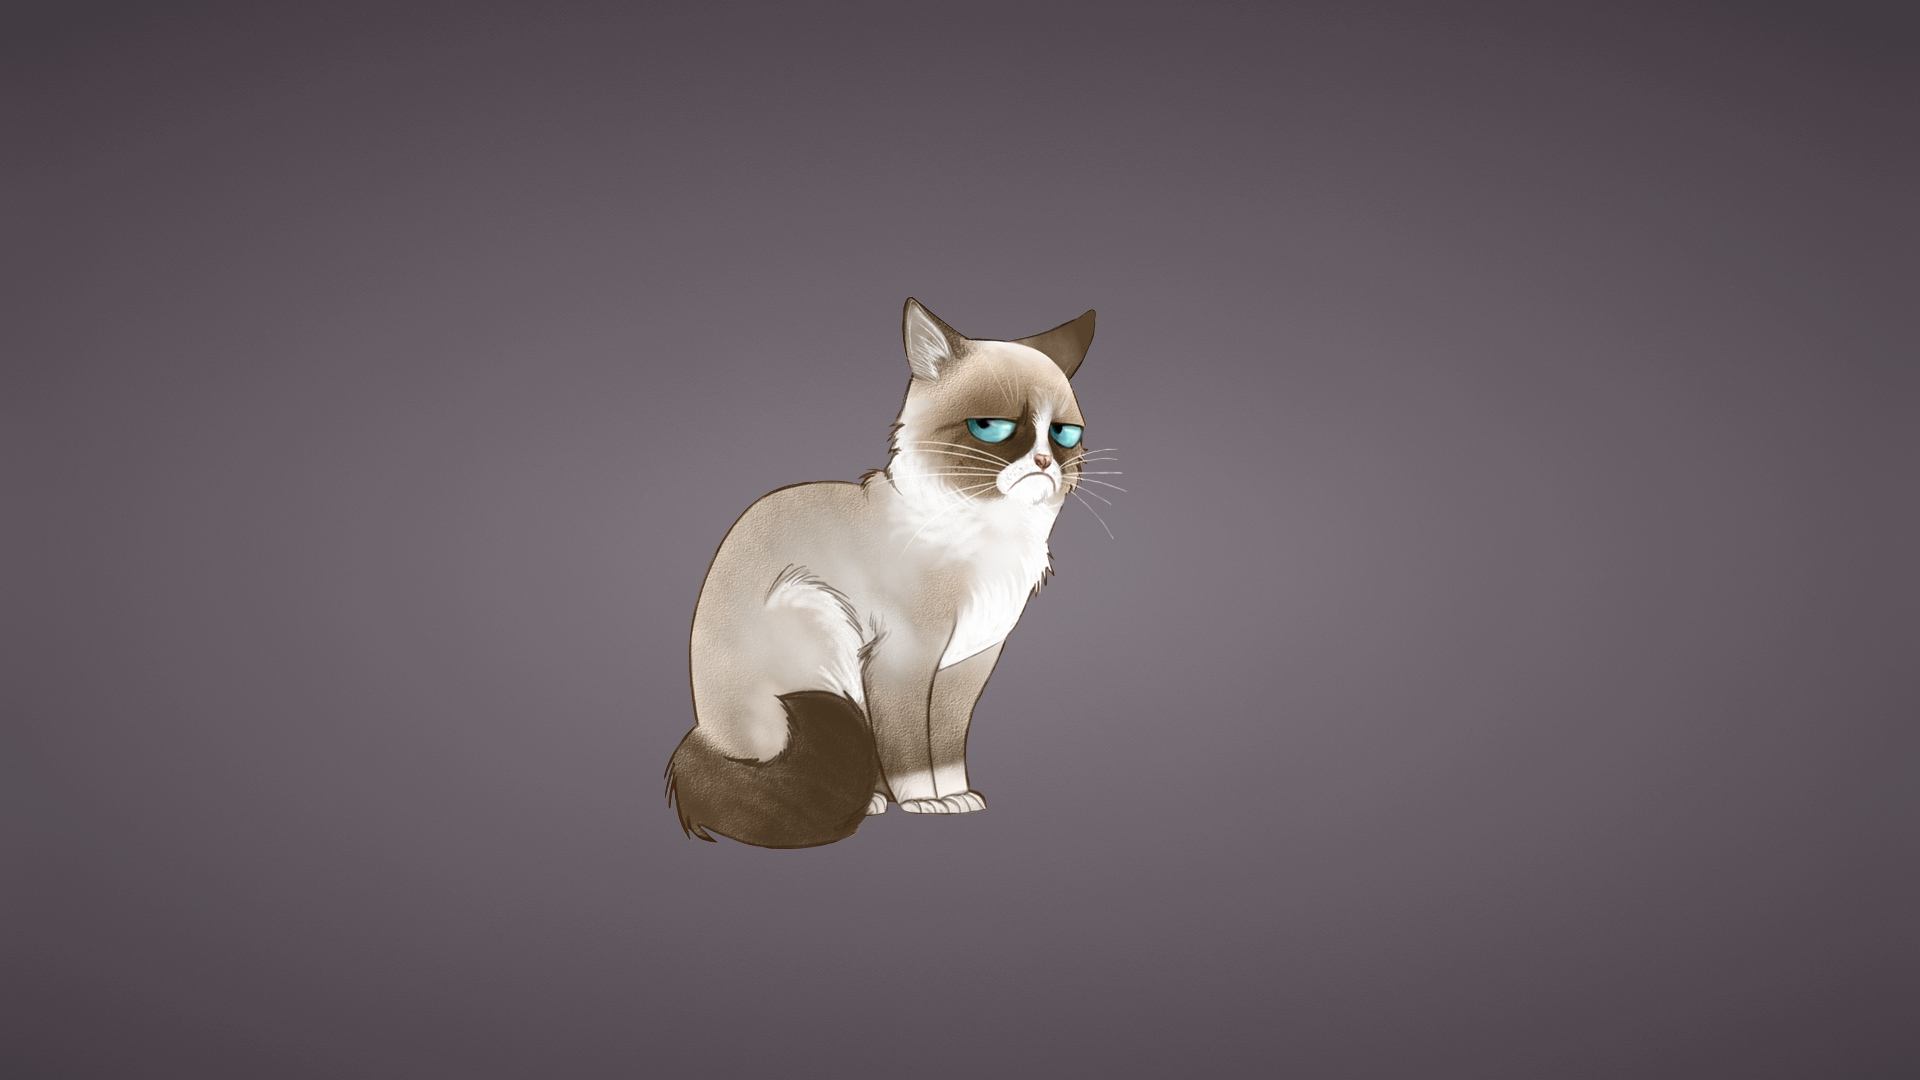 Wallpaper 1920x1080 Grumpy cat Meme Cat Full HD 1080p HD Background 1920x1080